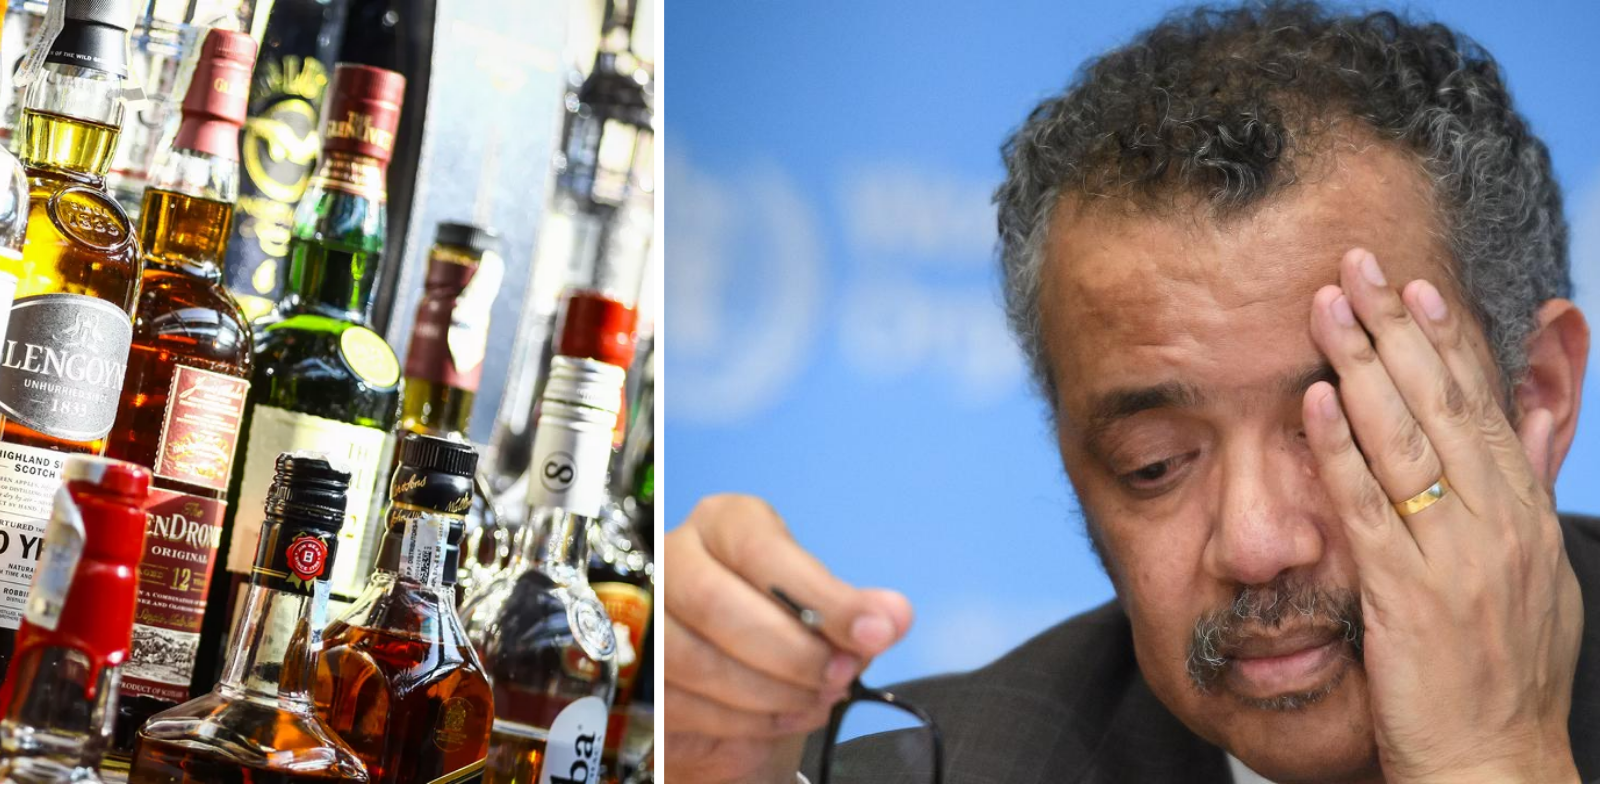 The WHO wants governments to crack down on alcohol use during coronavirus outbreak